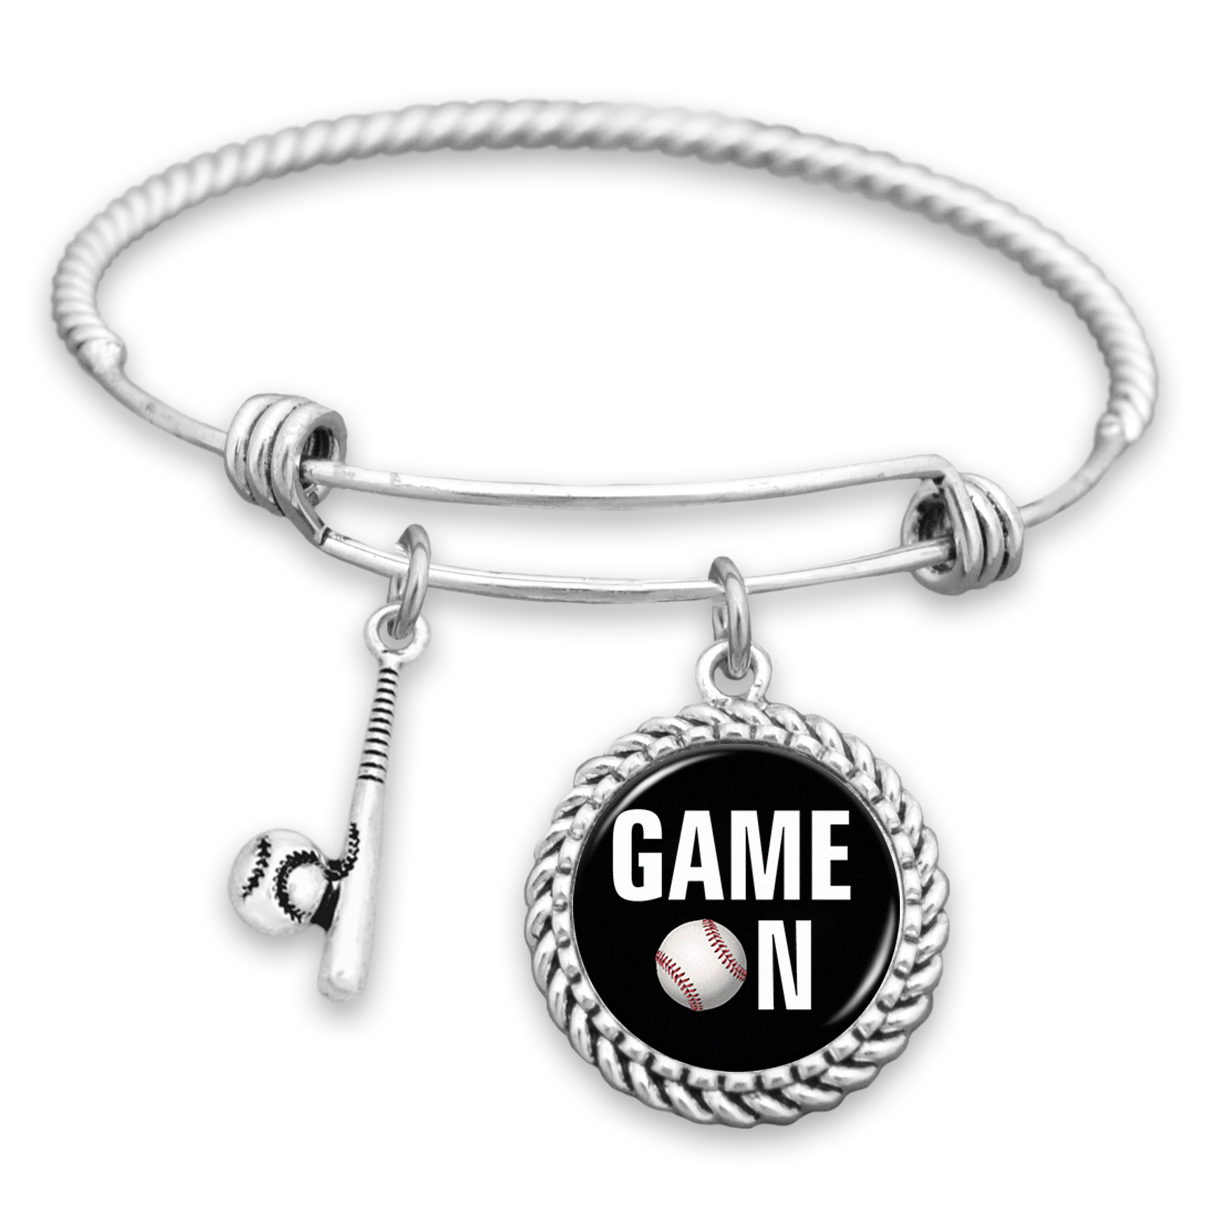 Baseball Charm Bracelet: Game On Baseball Charm Bracelet